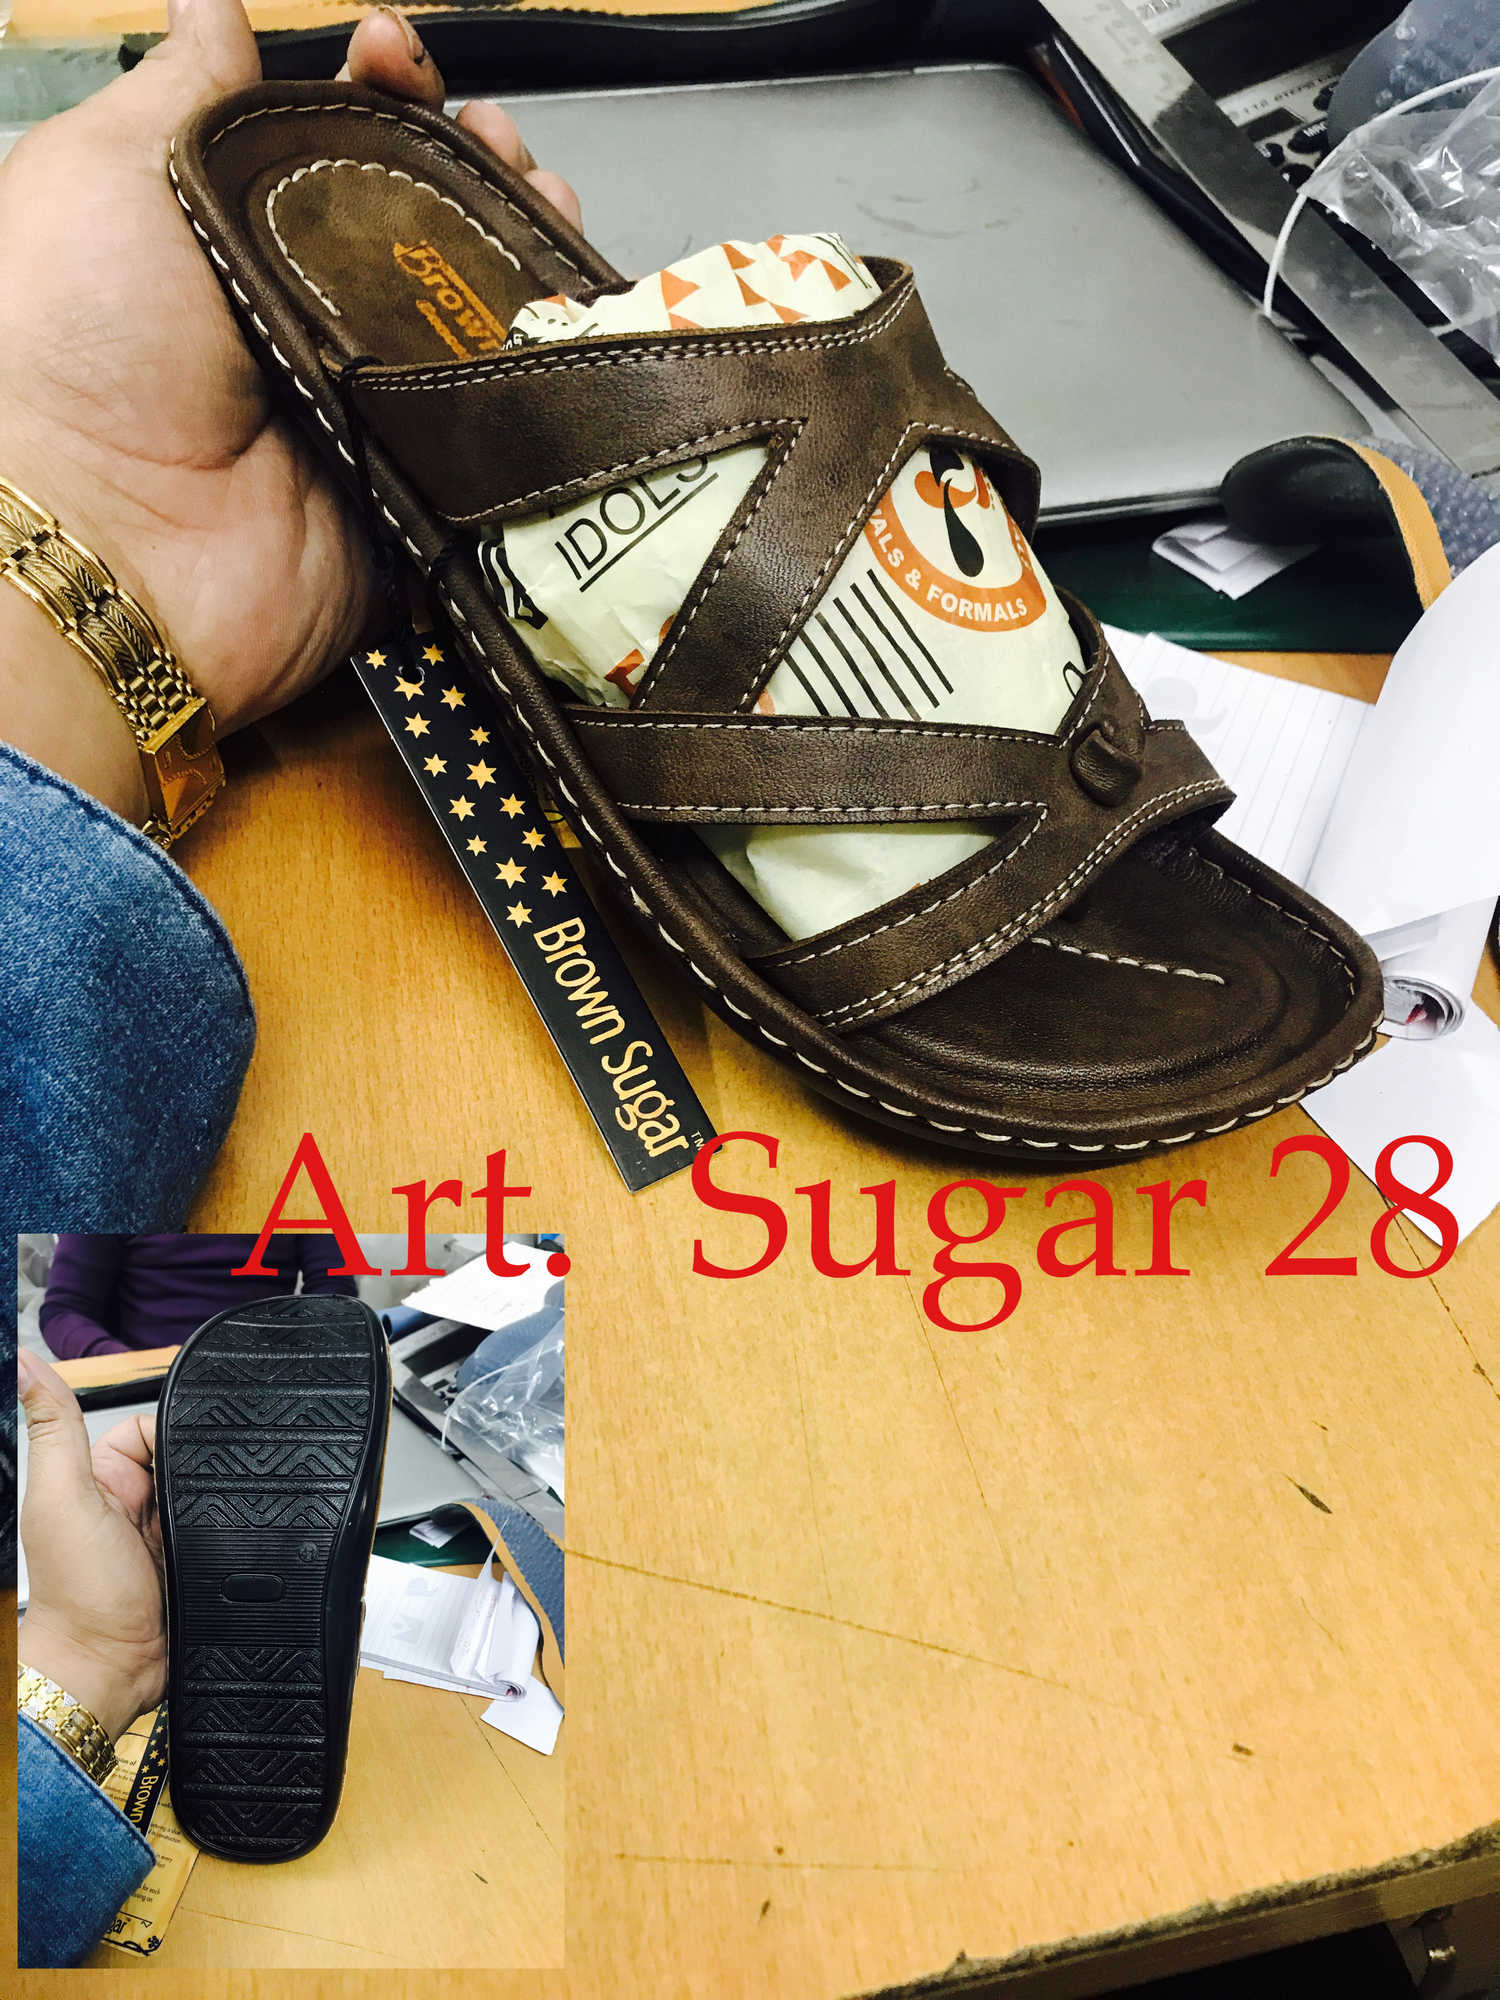 3b3433eedcb Top 10 Sandal Manufacturers in Agra - Justdial